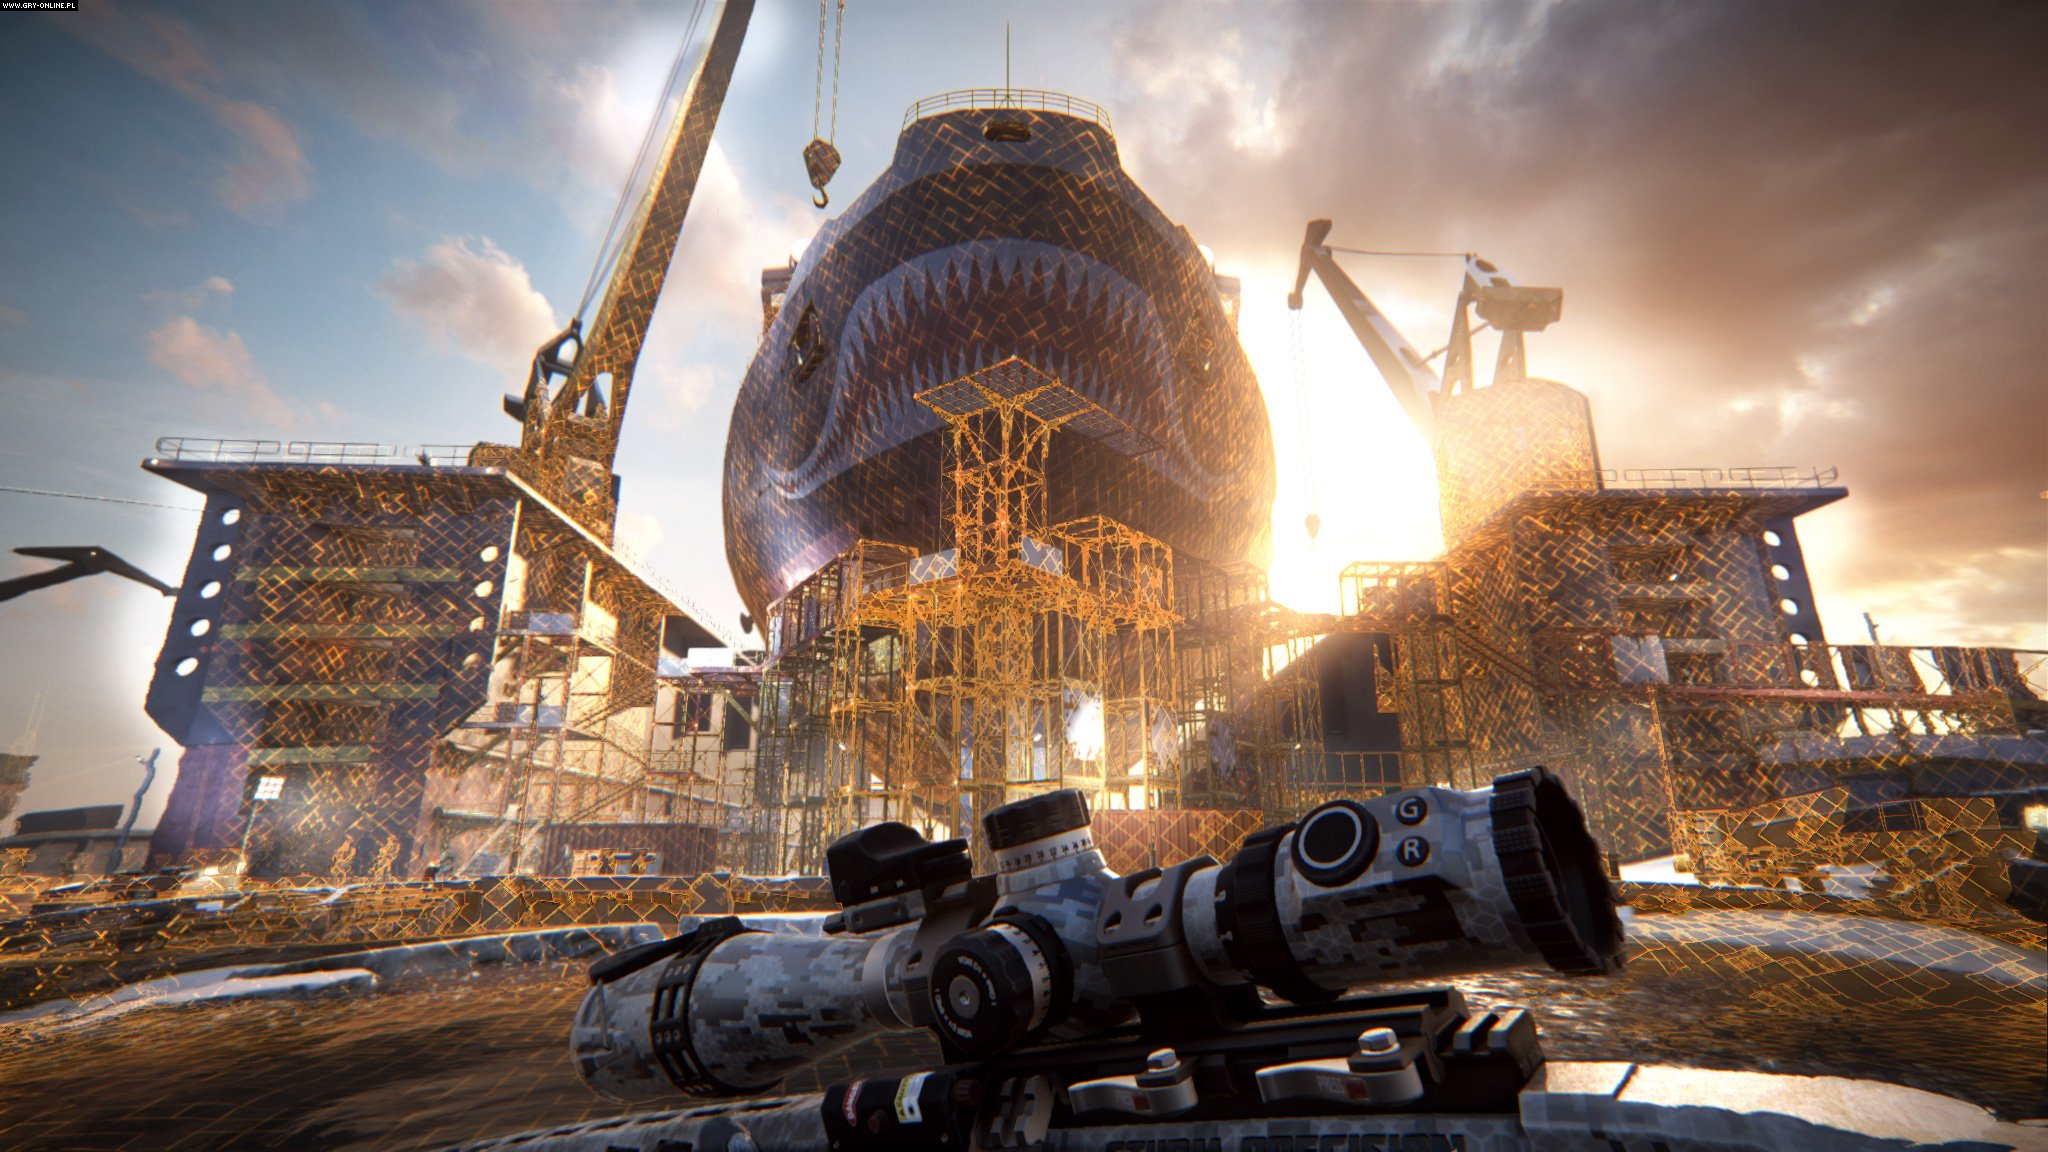 Sniper: Ghost Warrior Contracts PC, PS4, XONE Games Image 1/10, CI Games / City Interactive